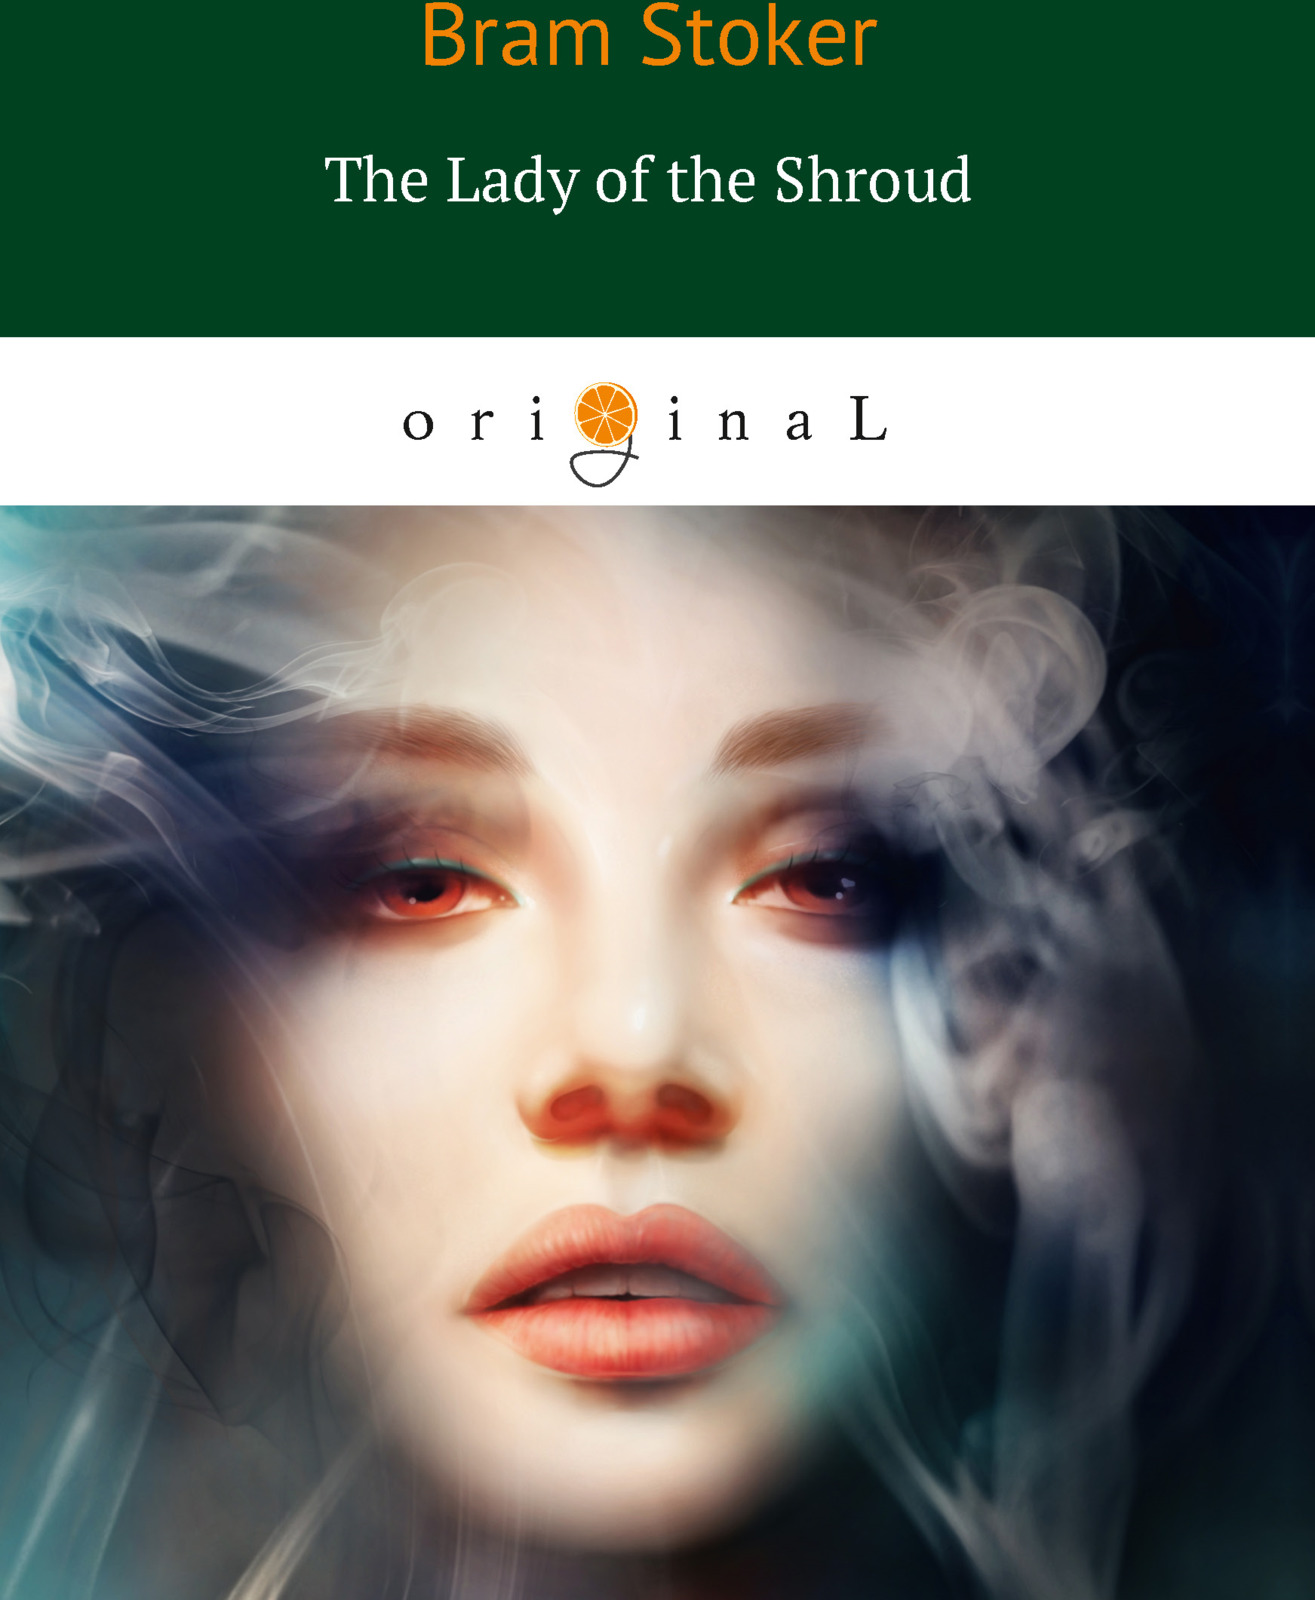 B. Stoker The Lady of the Shroud b stoker the lady of the shroud